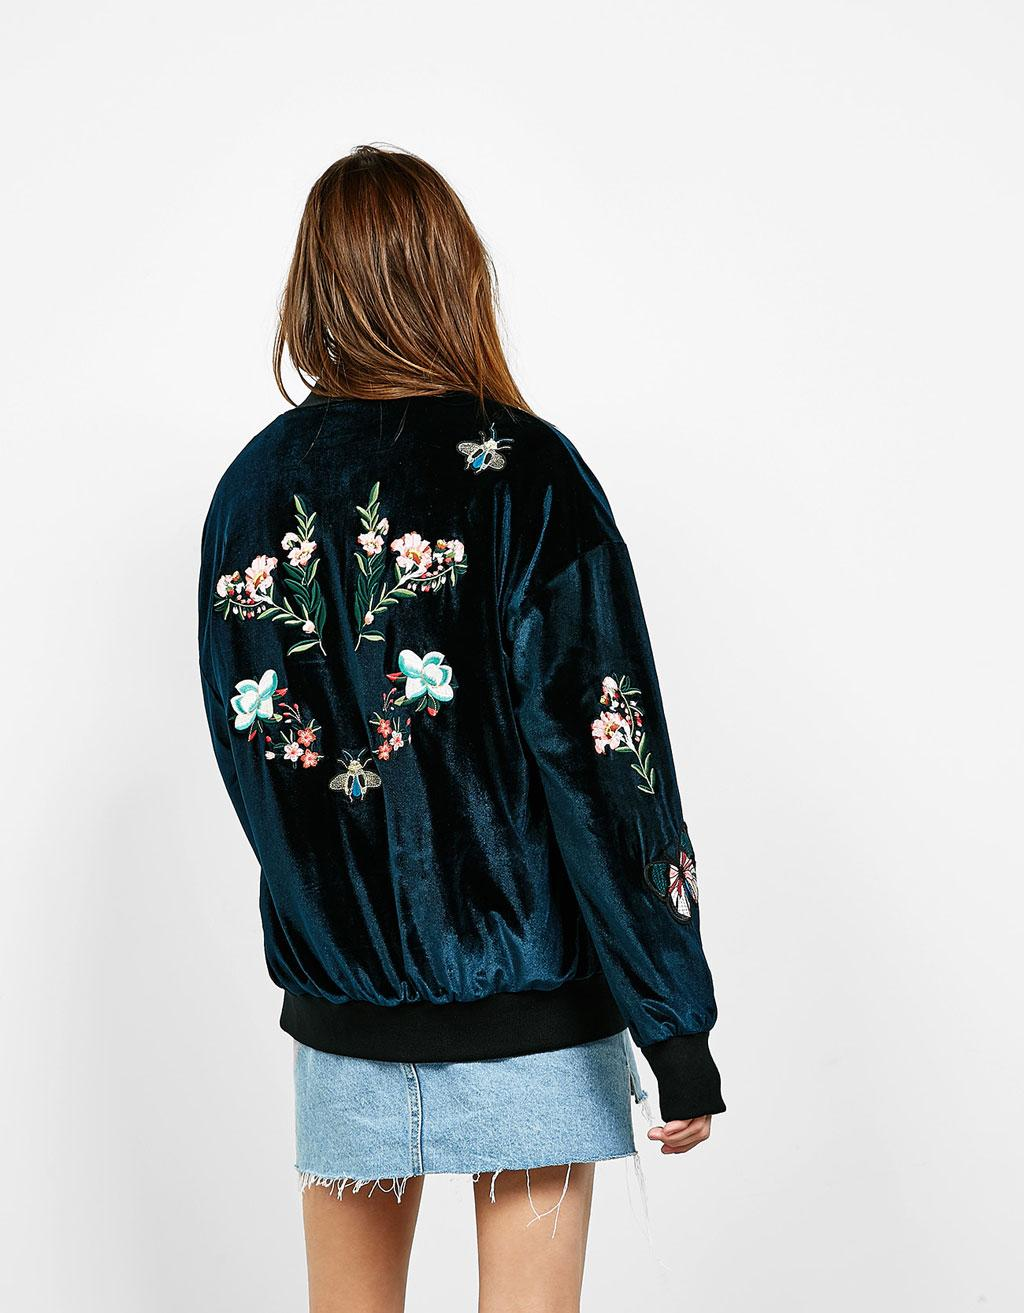 A model is wearing a velvet petrol bomber jacket with floral decorations and a denim mini skirt